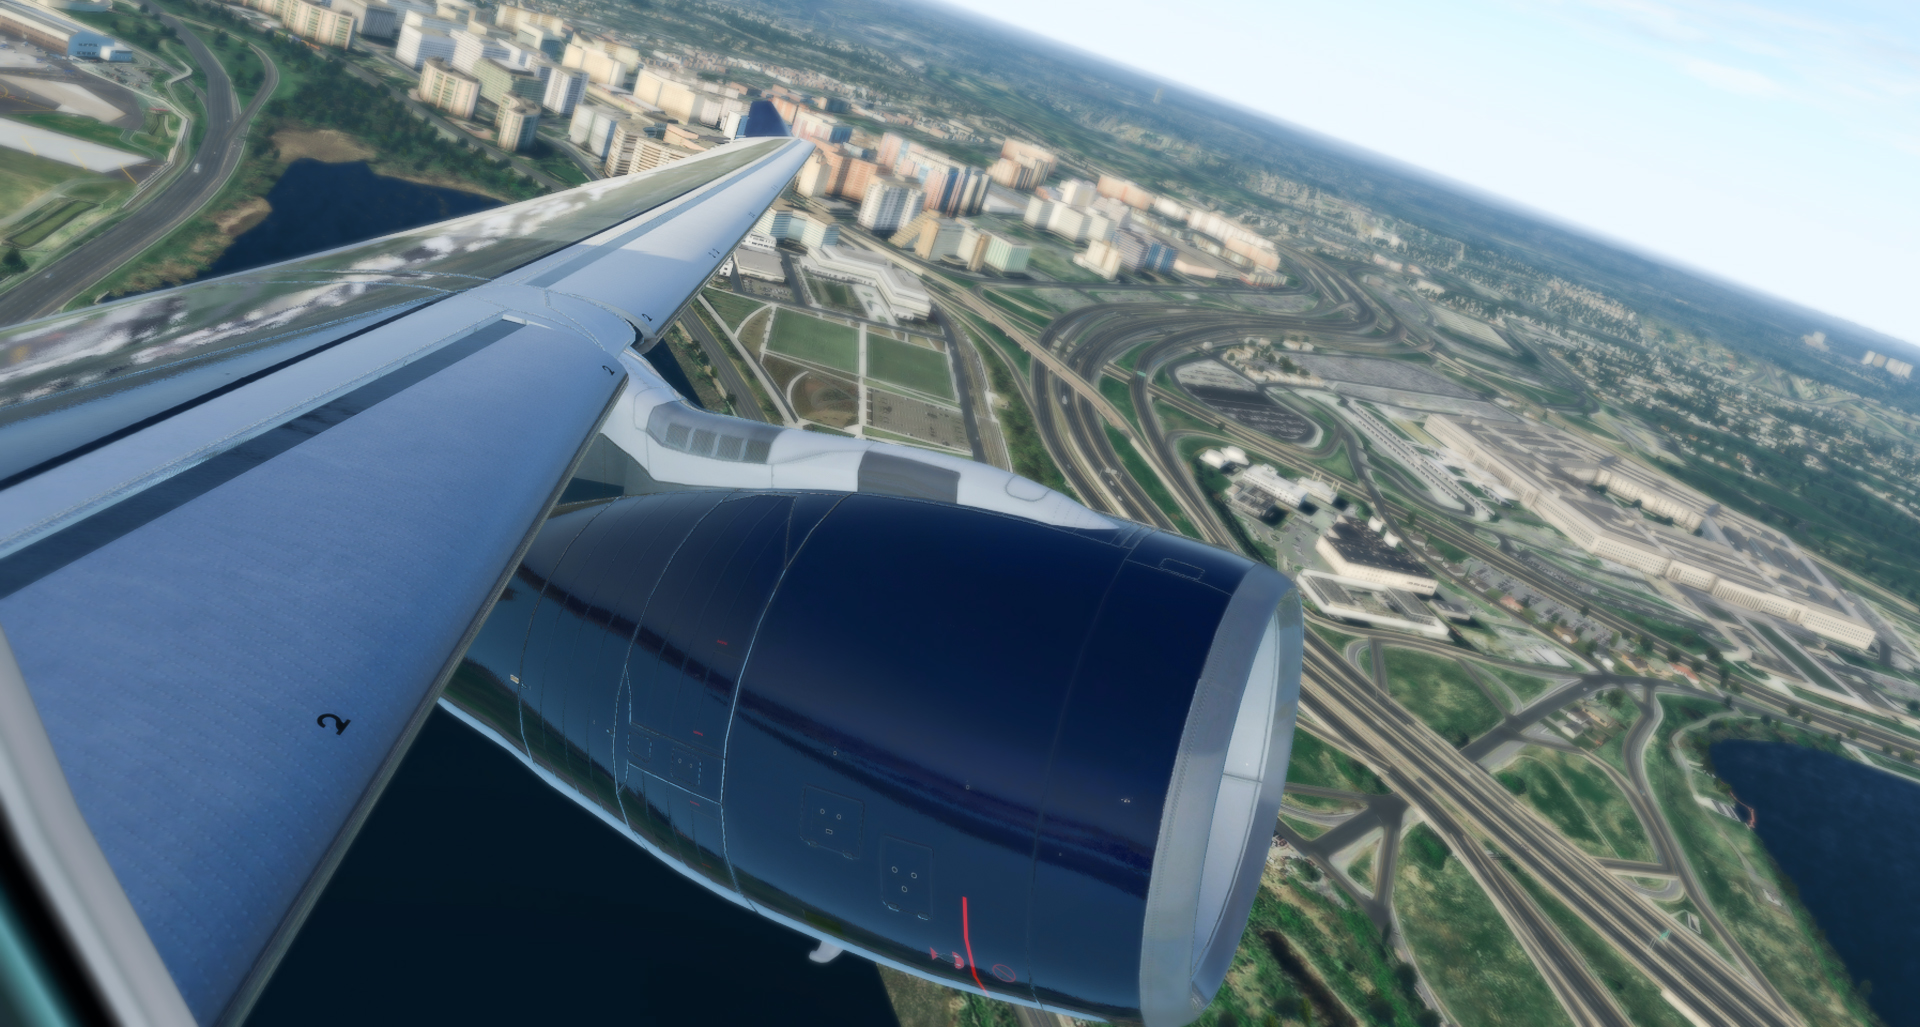 JD330 Airliner   for X-Plane 10/11